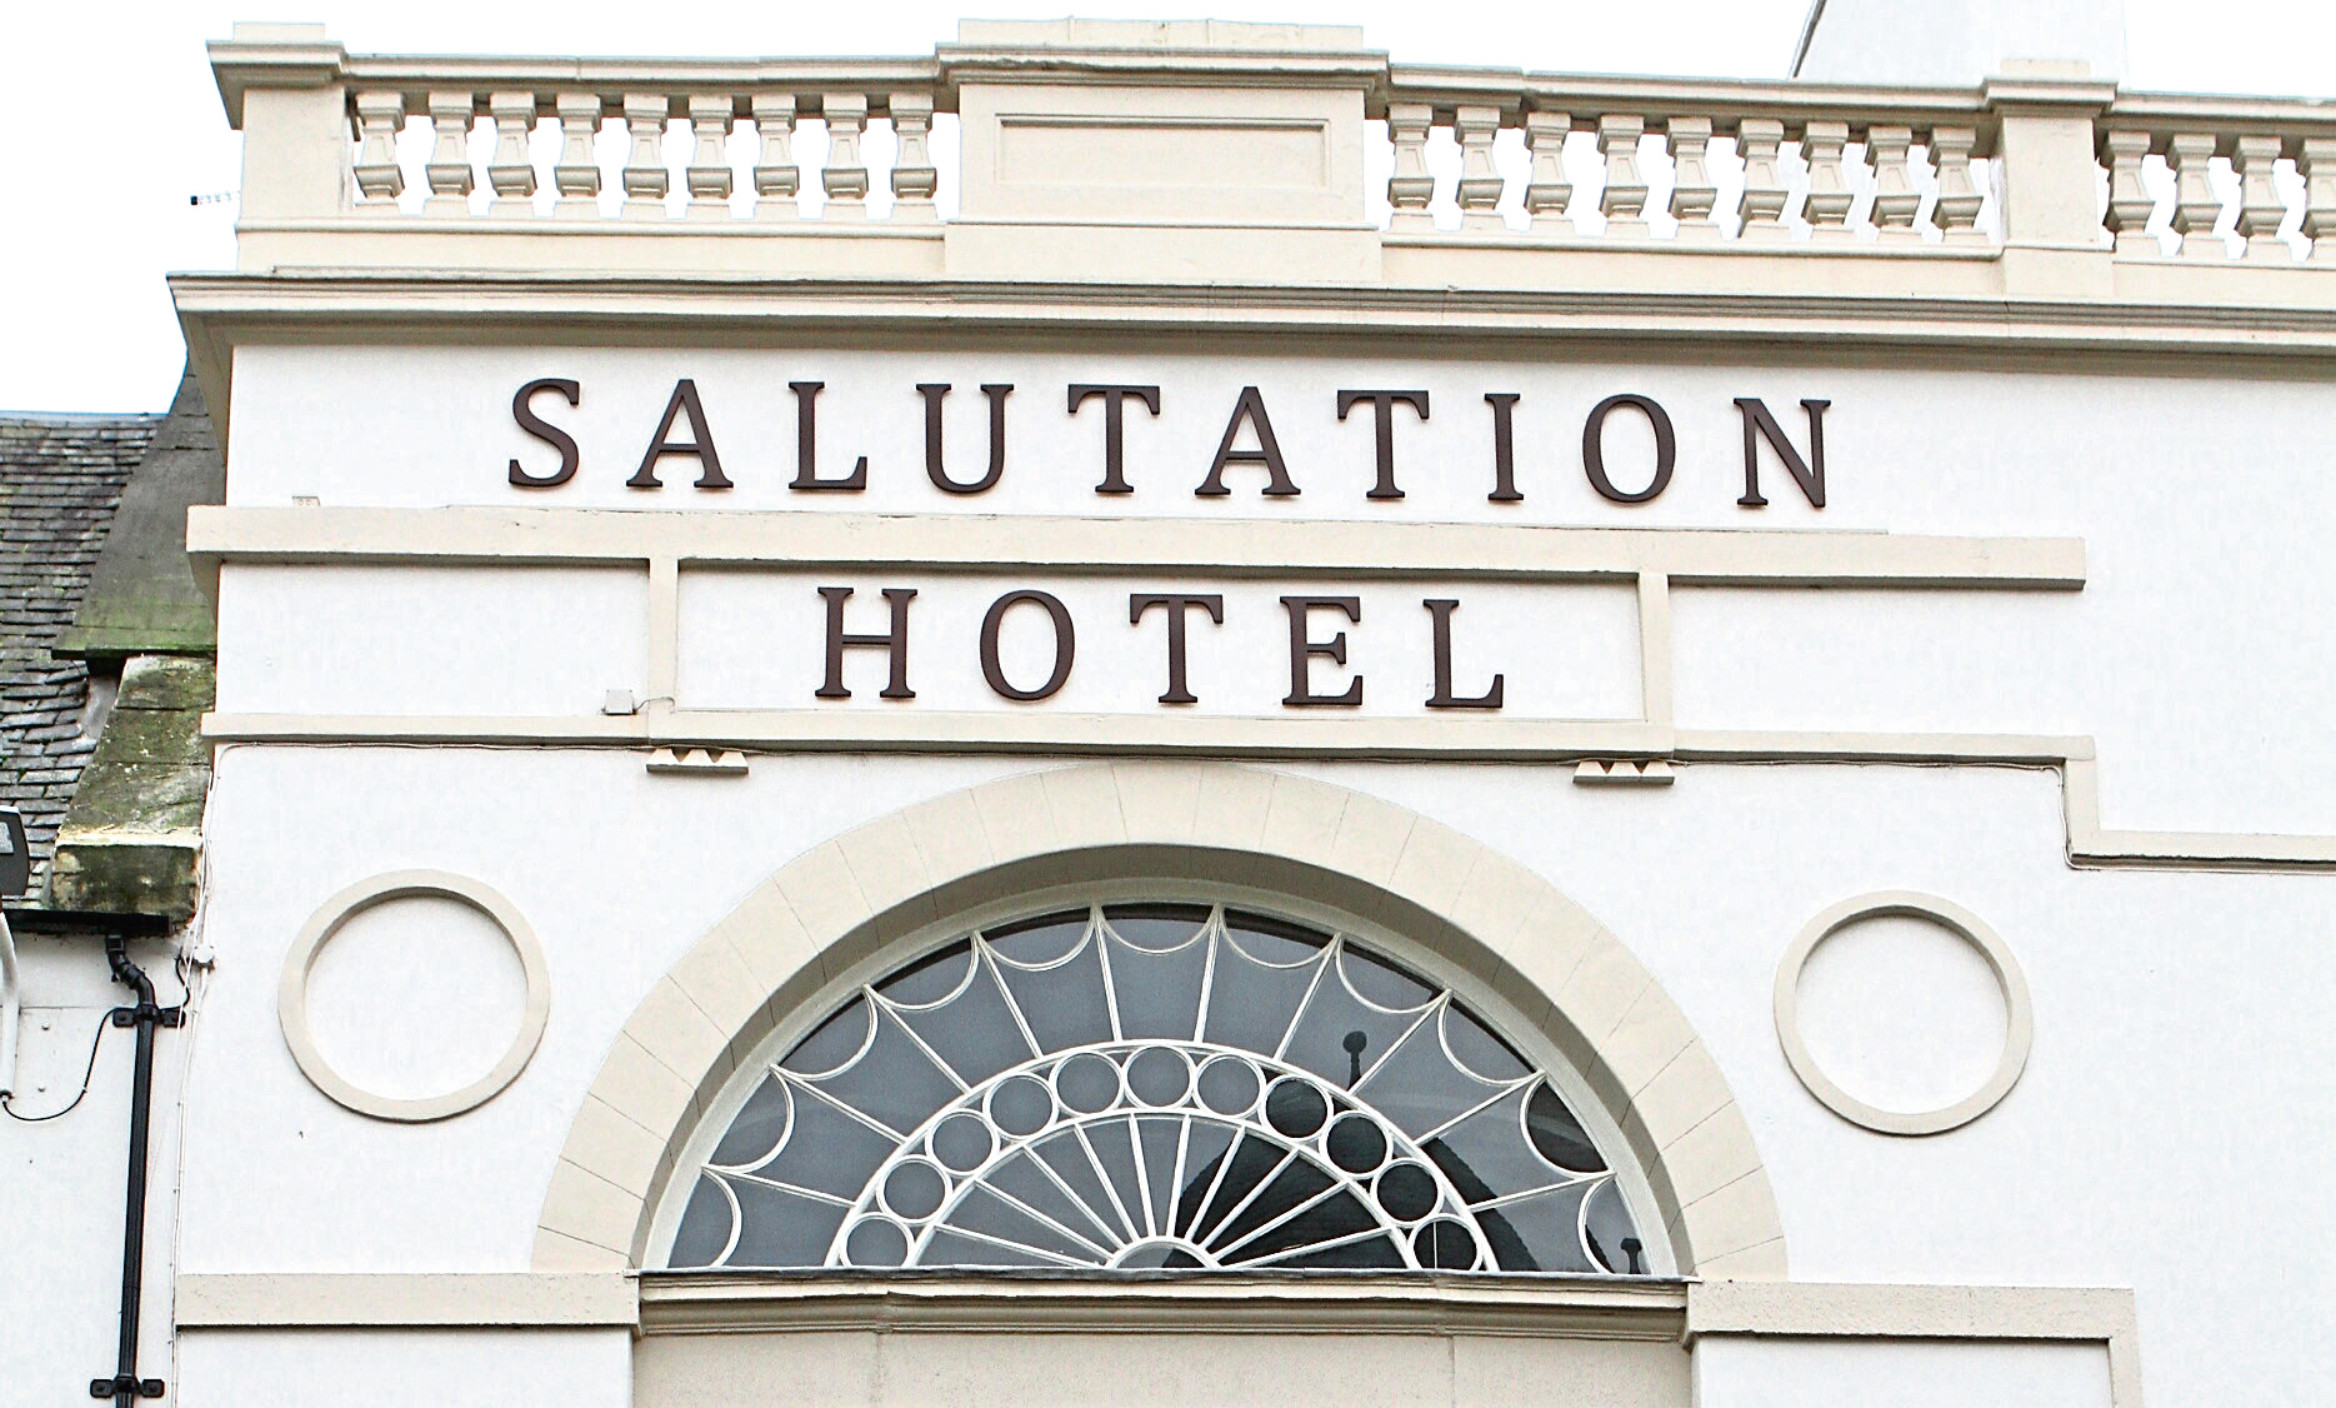 Courier News - Perth story - Winners & losers in rates changes - Perth. Picture shows; one of the losers in the rates changes, the Salutation Hotel in Perth.  Tuesday 20th December 2016.